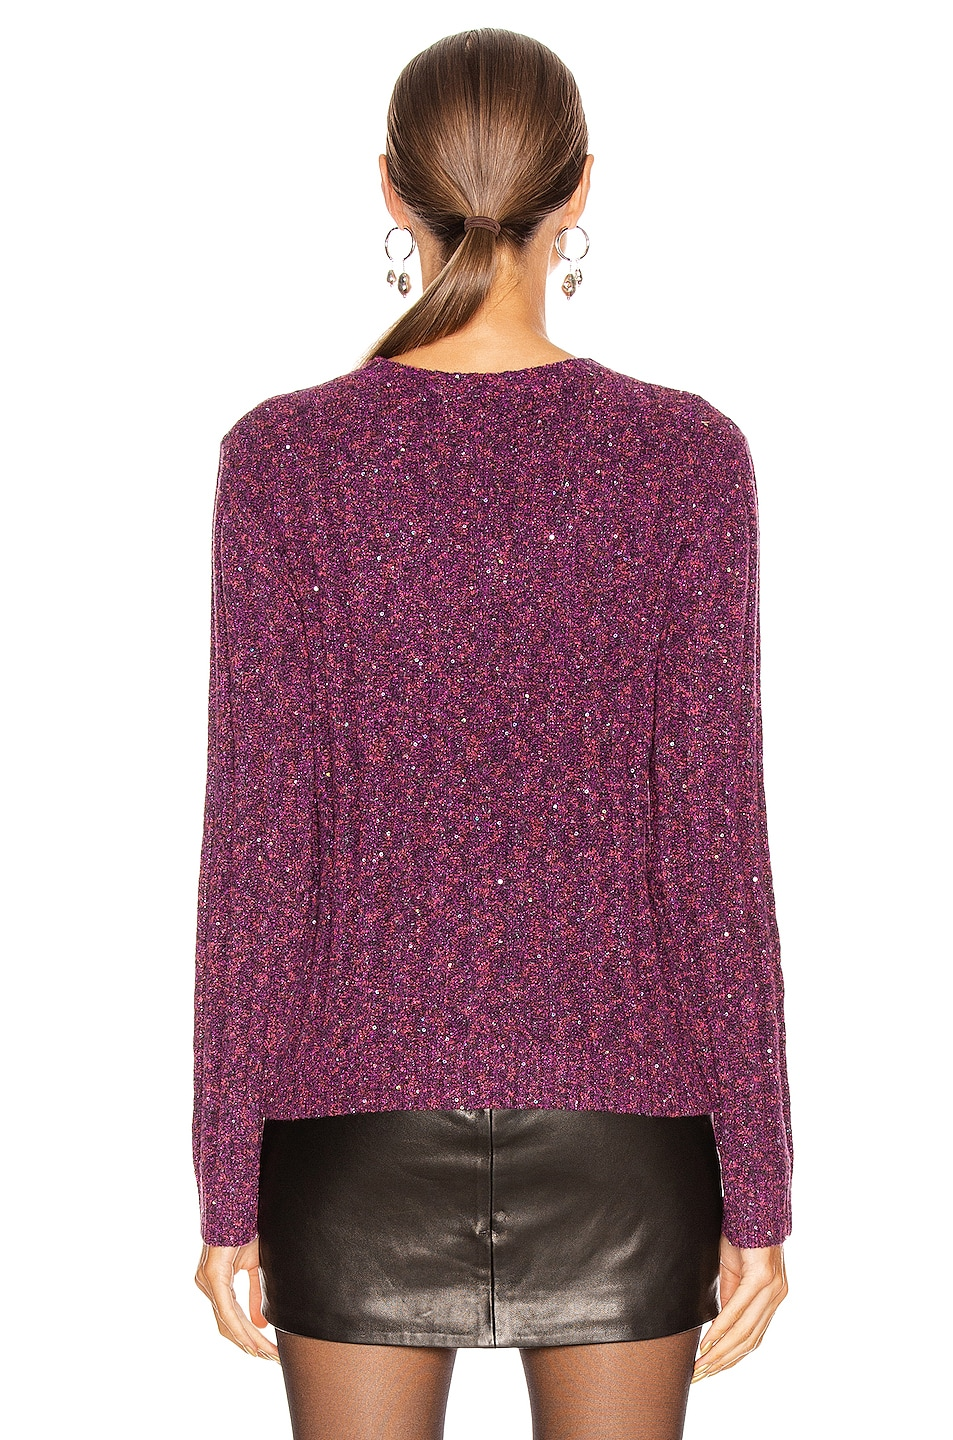 Image 3 of GRLFRND Freckled Sweater in Fuchsia & Black